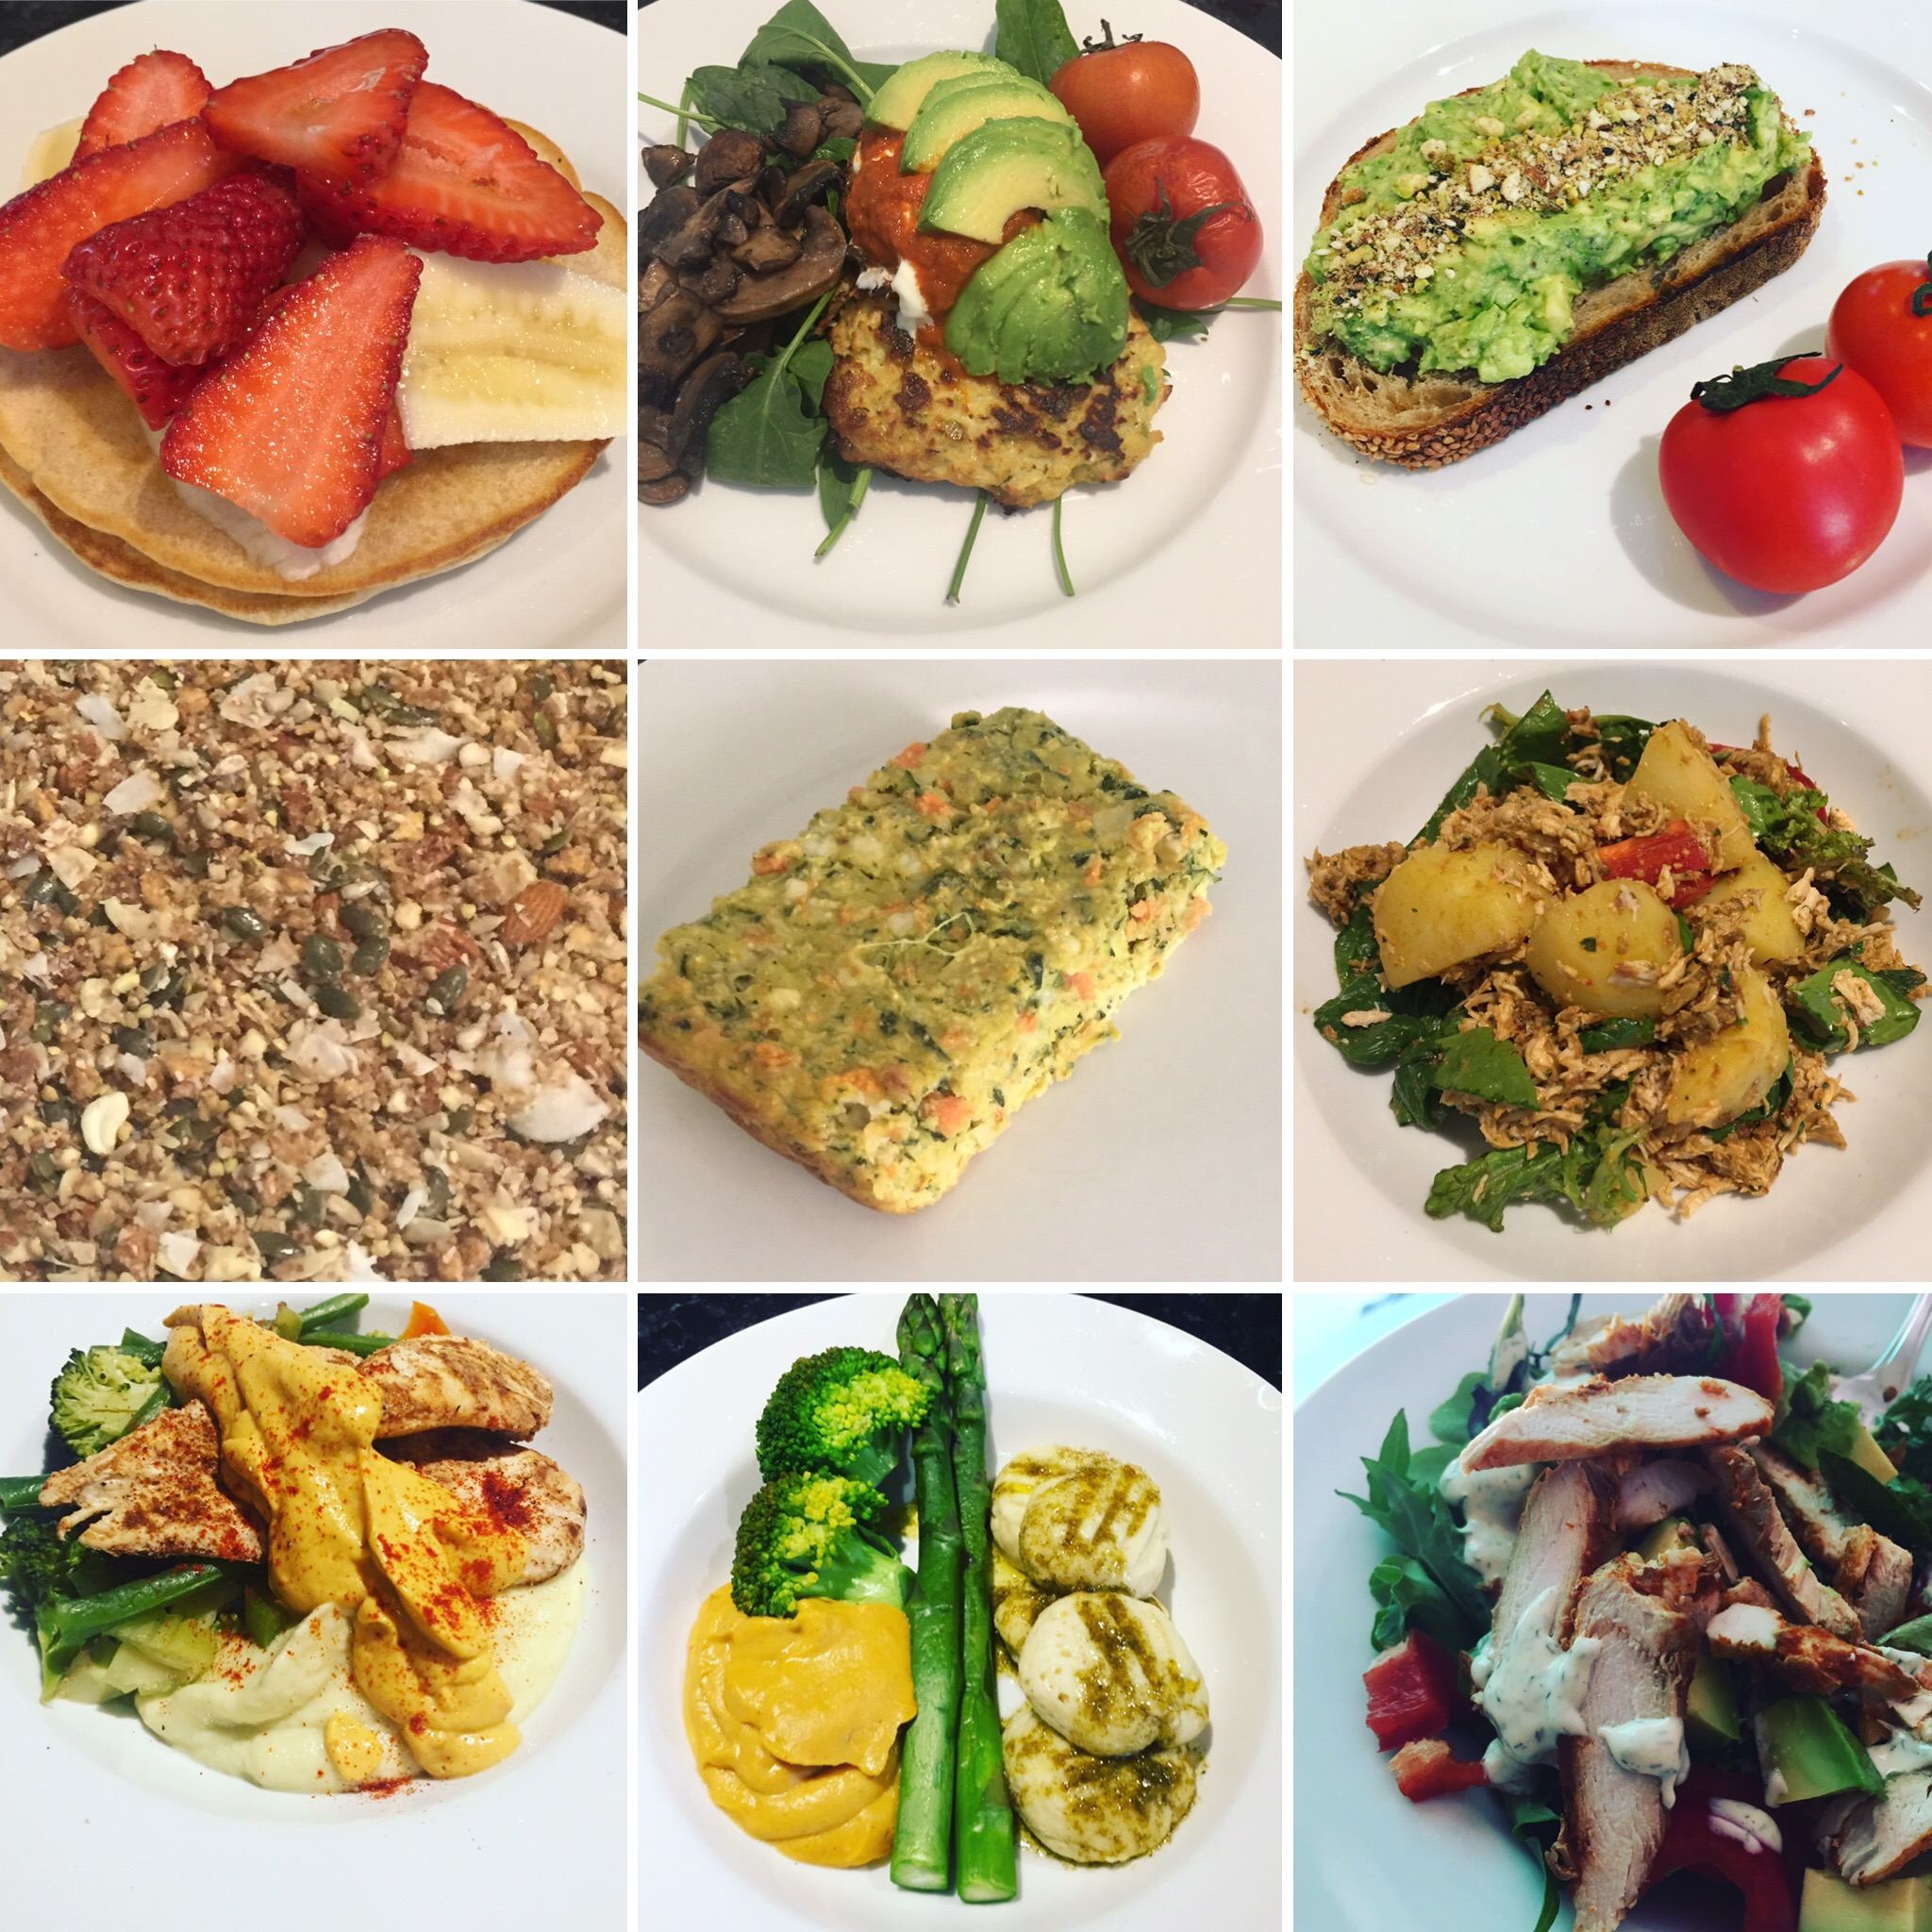 Some of this weeks meals